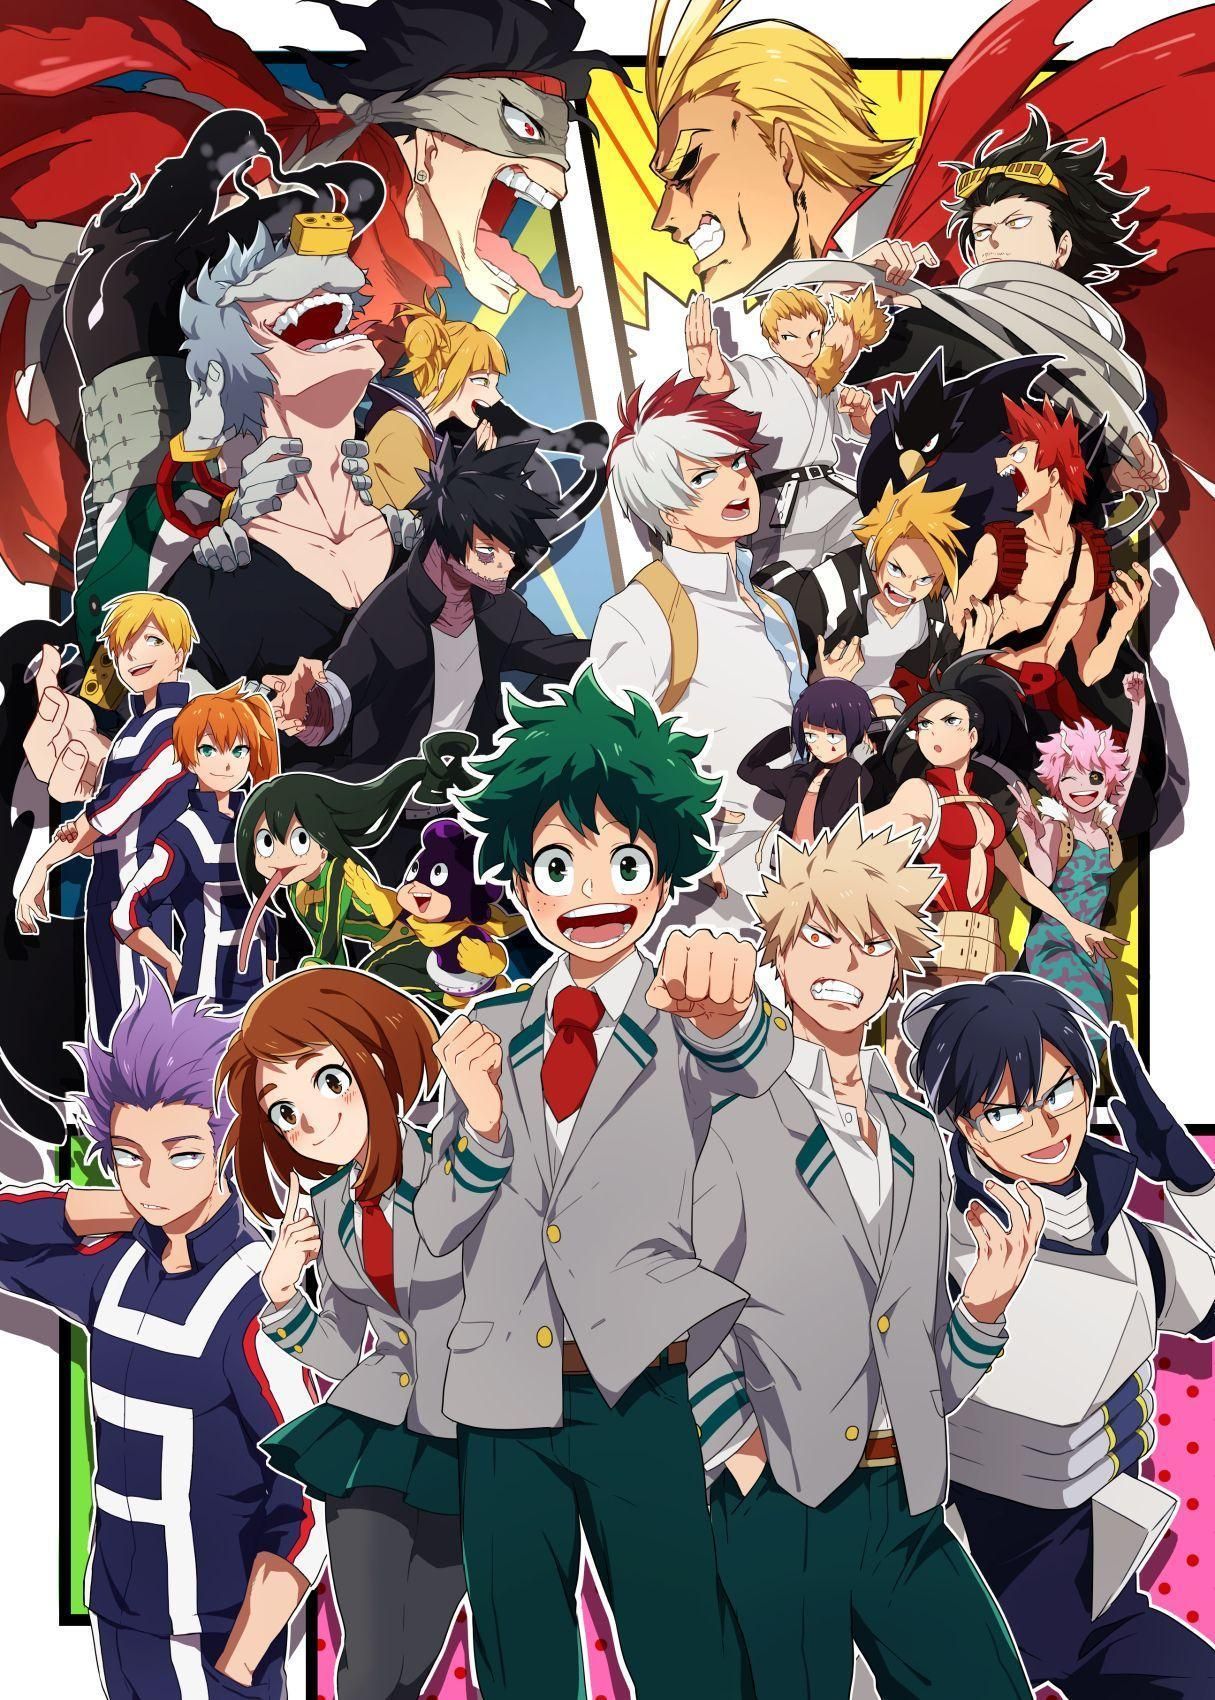 boku no hero academia wallpaper images (28) - HD Wallpapers Buzz